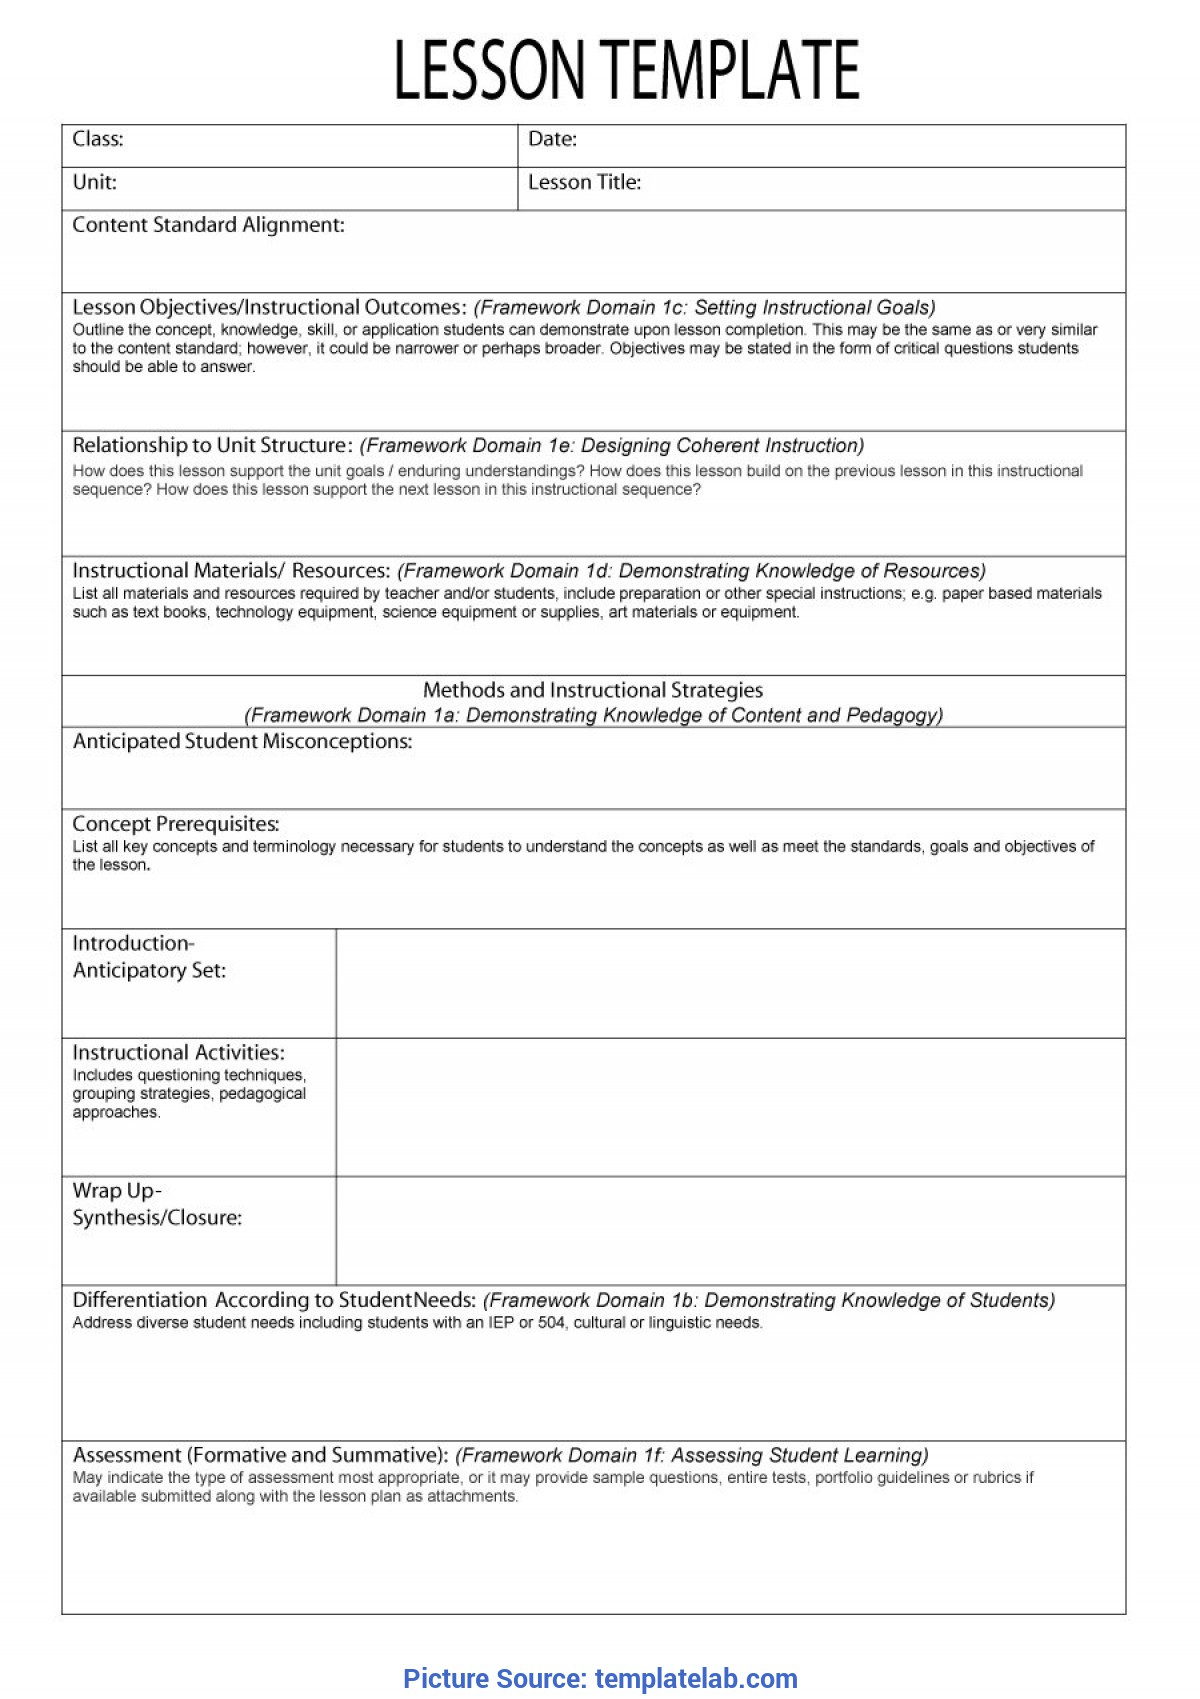 Excellent How To Make A Lesson Plan Template 44 Free Lesson Plan Templates [Common Core, Preschool, Wee